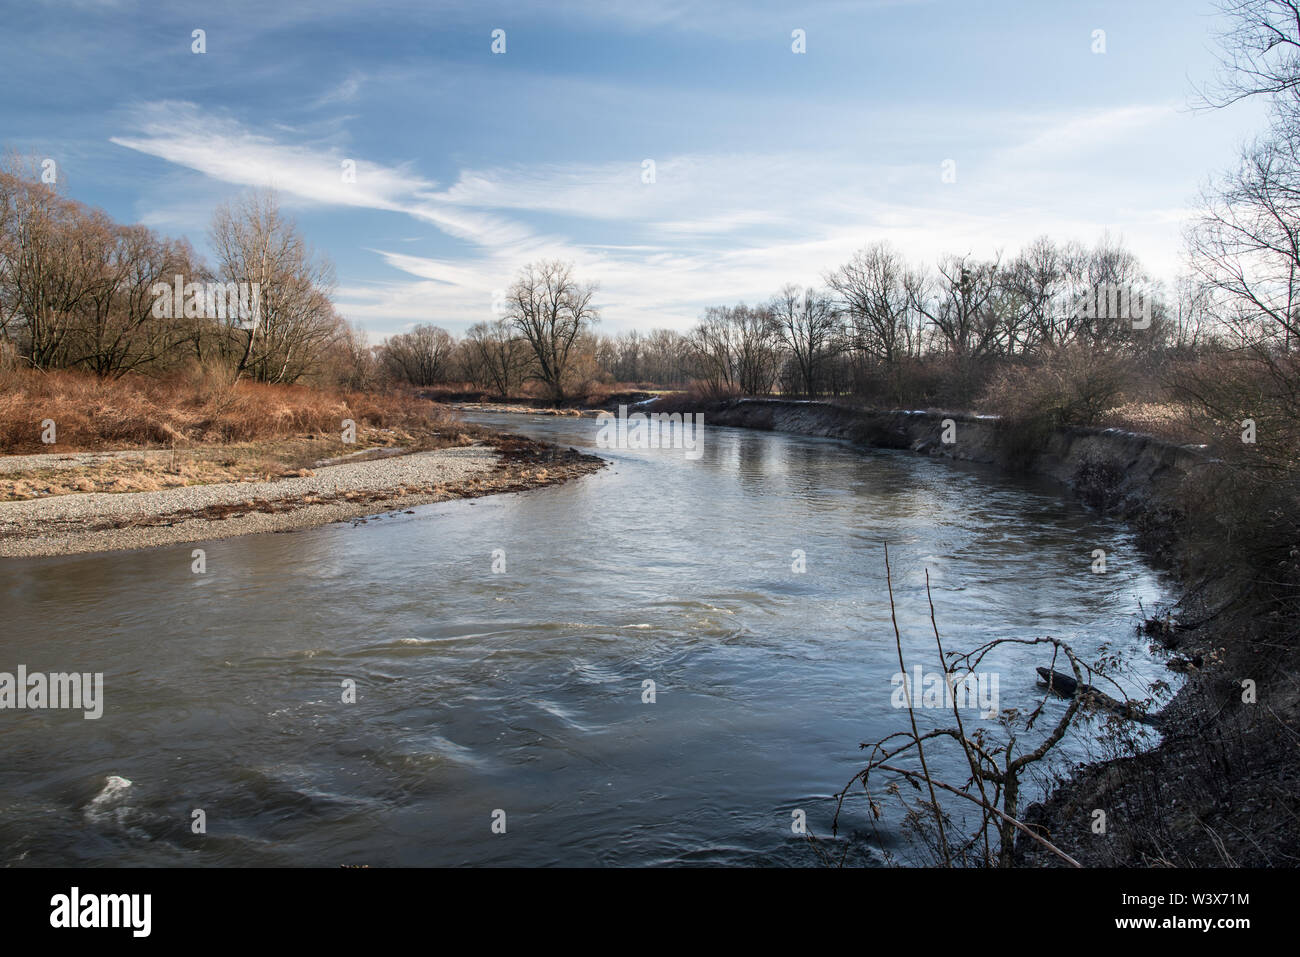 Odra river meander on Graniczne meandry Odry protected area on polish-czech borders near Bohumin and Chalupki during beautiful day with blue sky Stock Photo